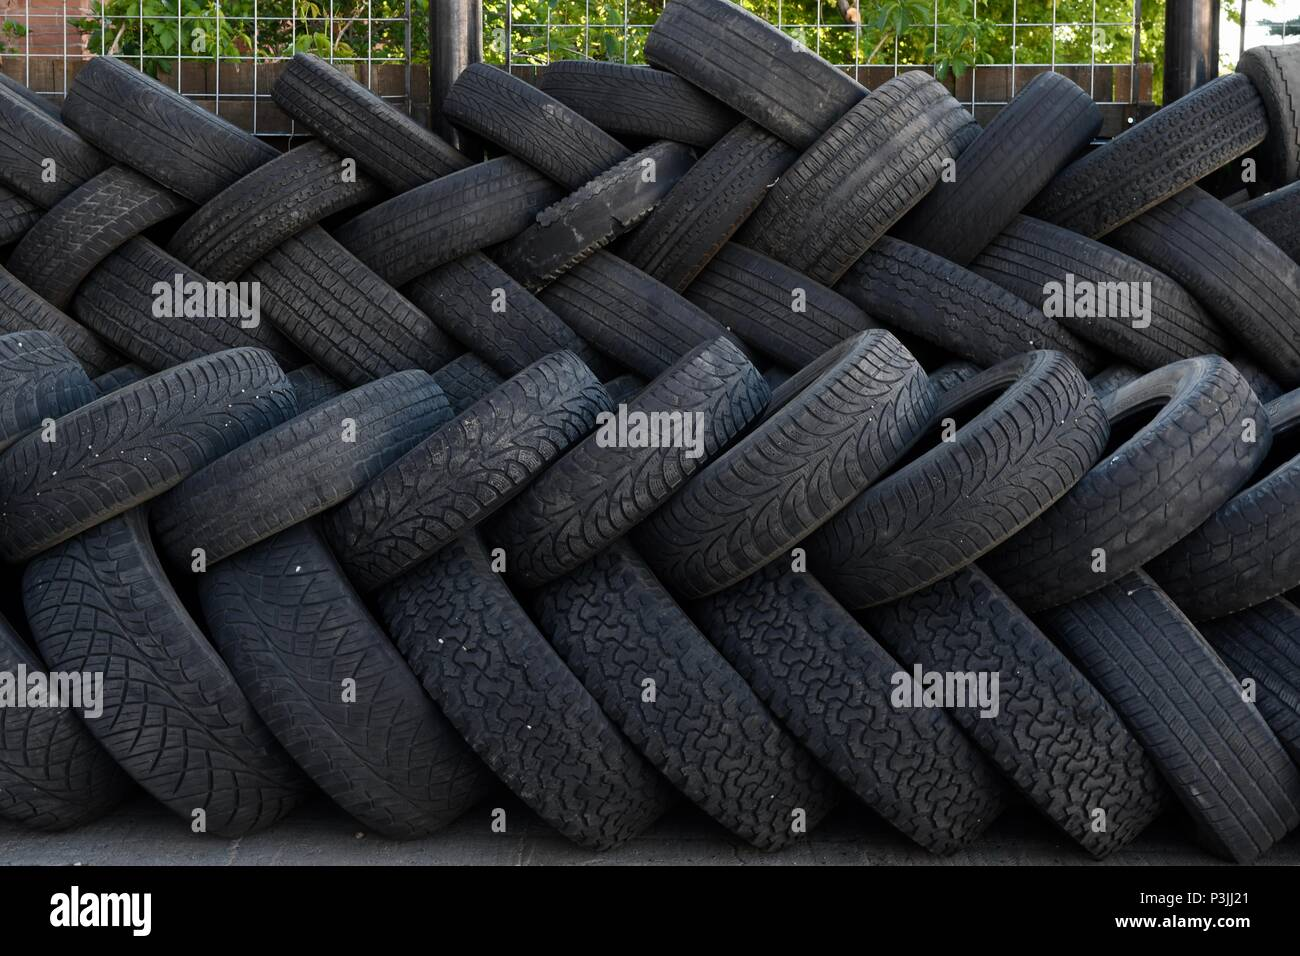 A gathering of tires in Salida Colorado, stacked in herringbone pattern - Stock Image